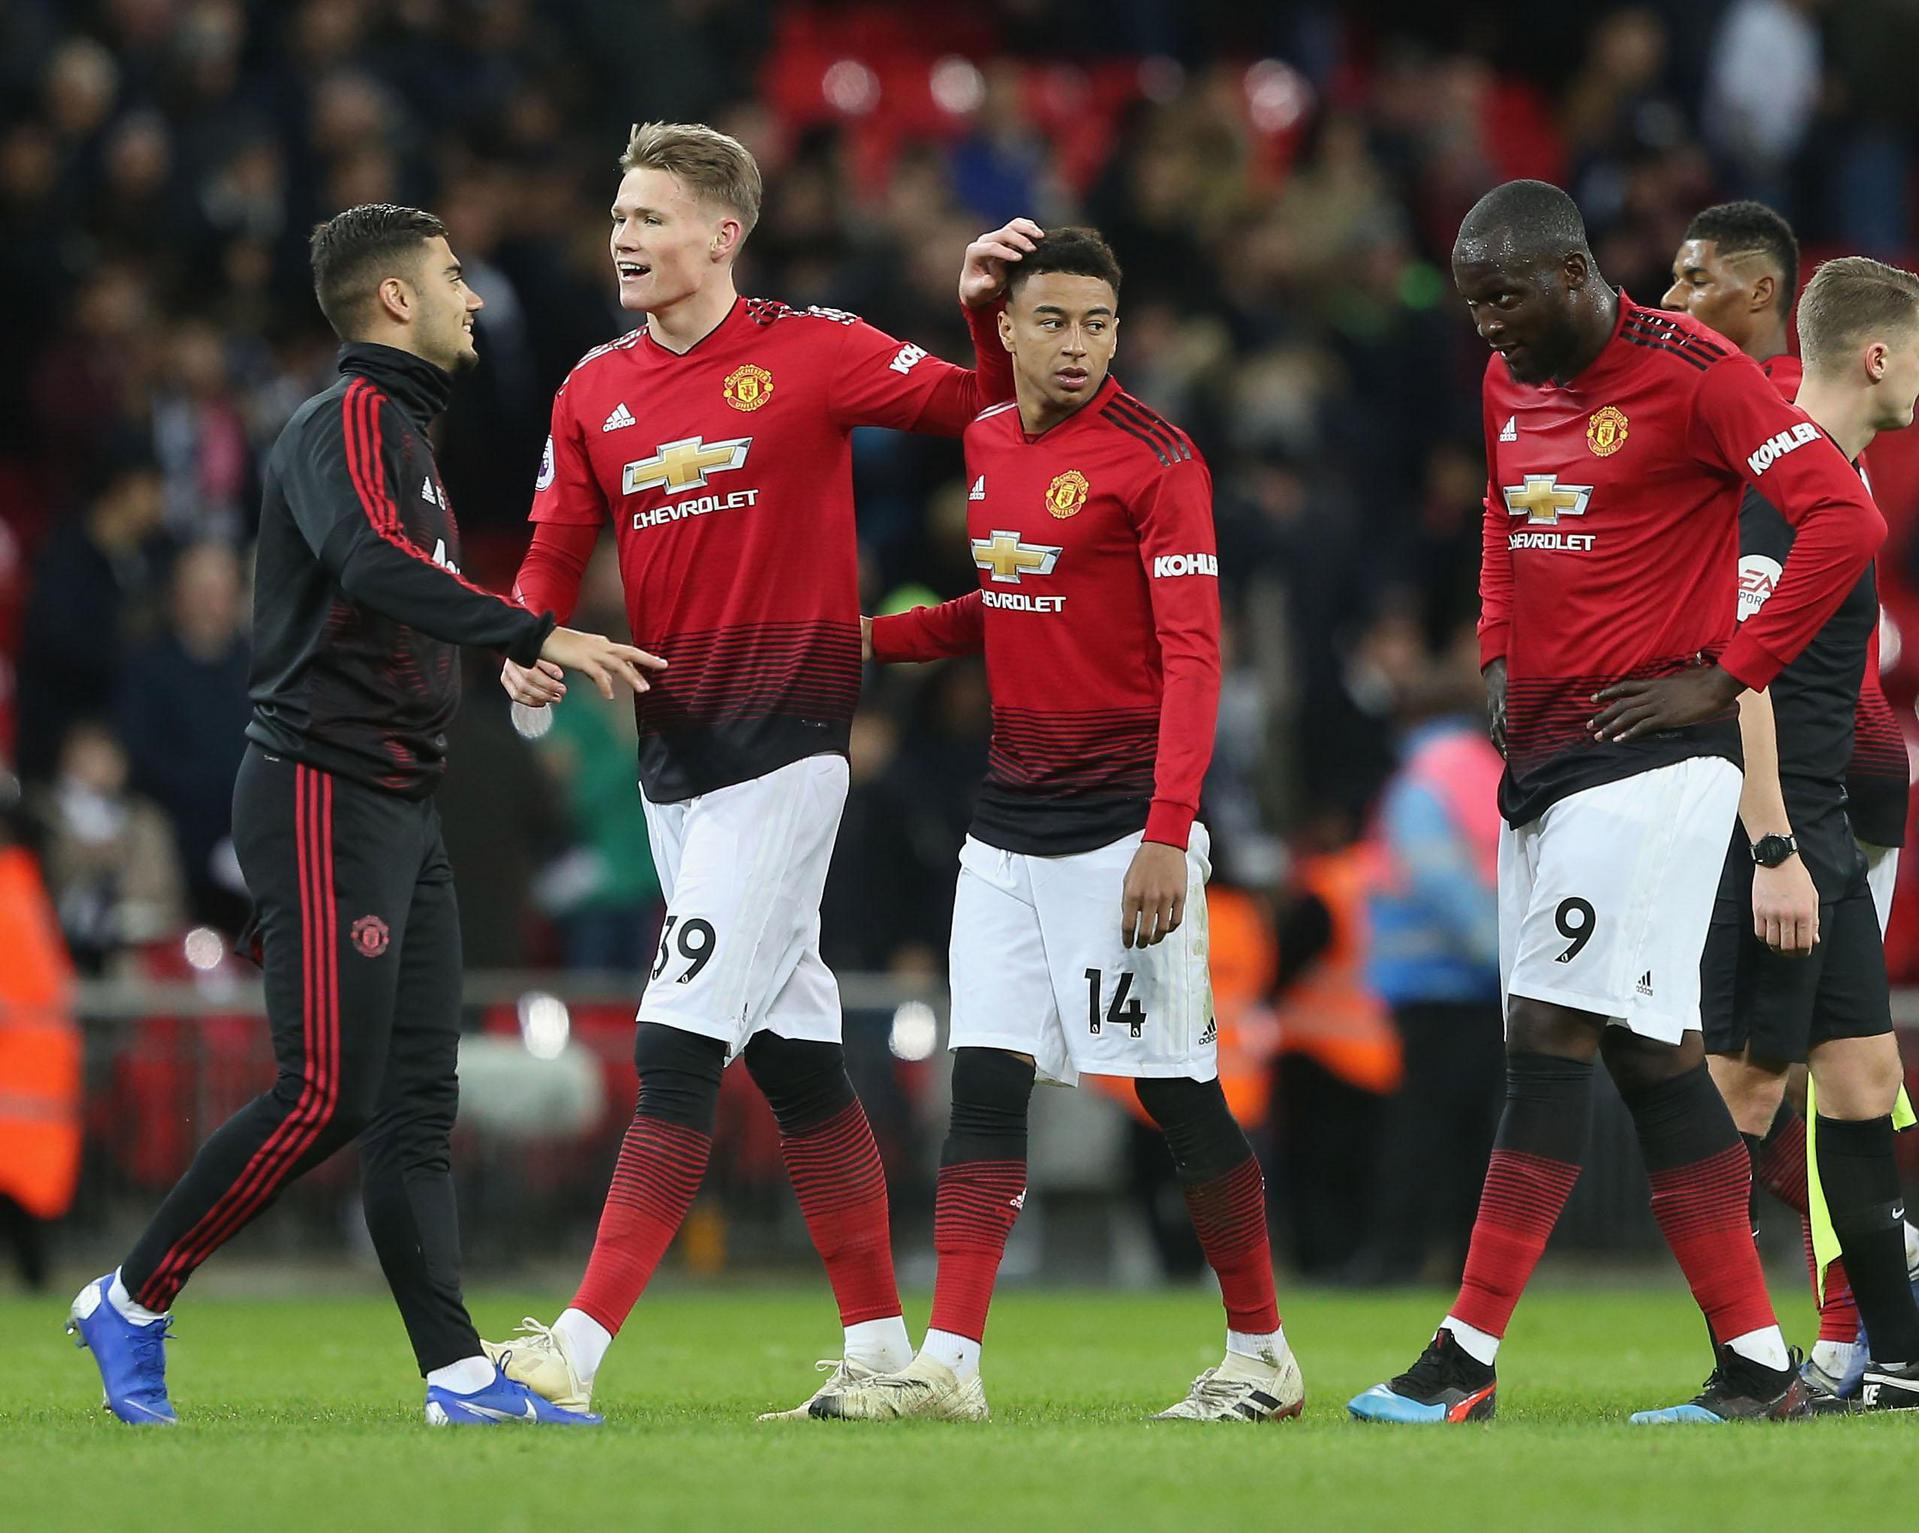 Scott McTominay and Jesse Lingard at the final whistle.